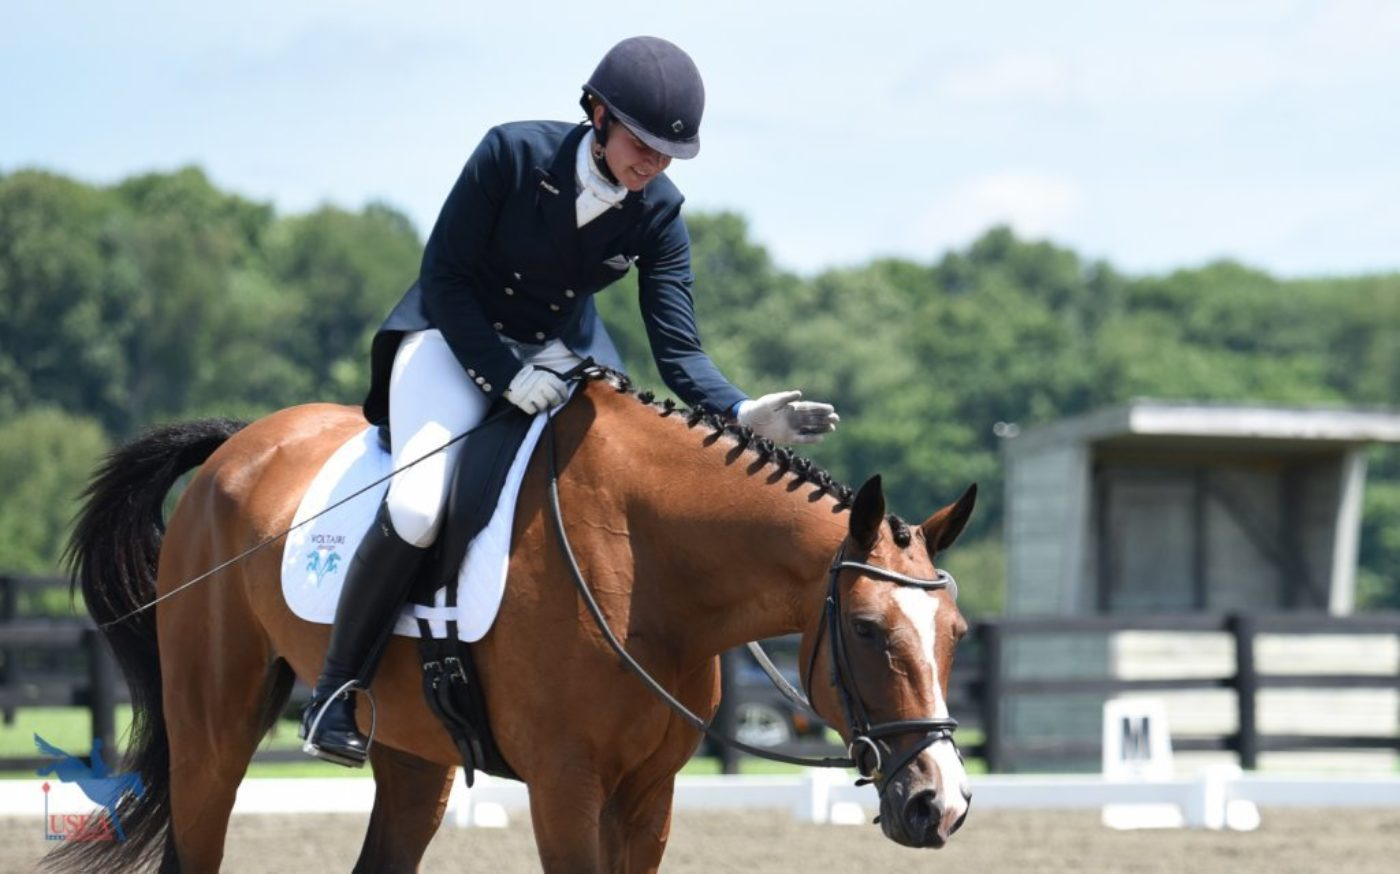 Praise for Cooley O from Jules Ennis following their dressage test. USEA/Jessica Duffy Photo.